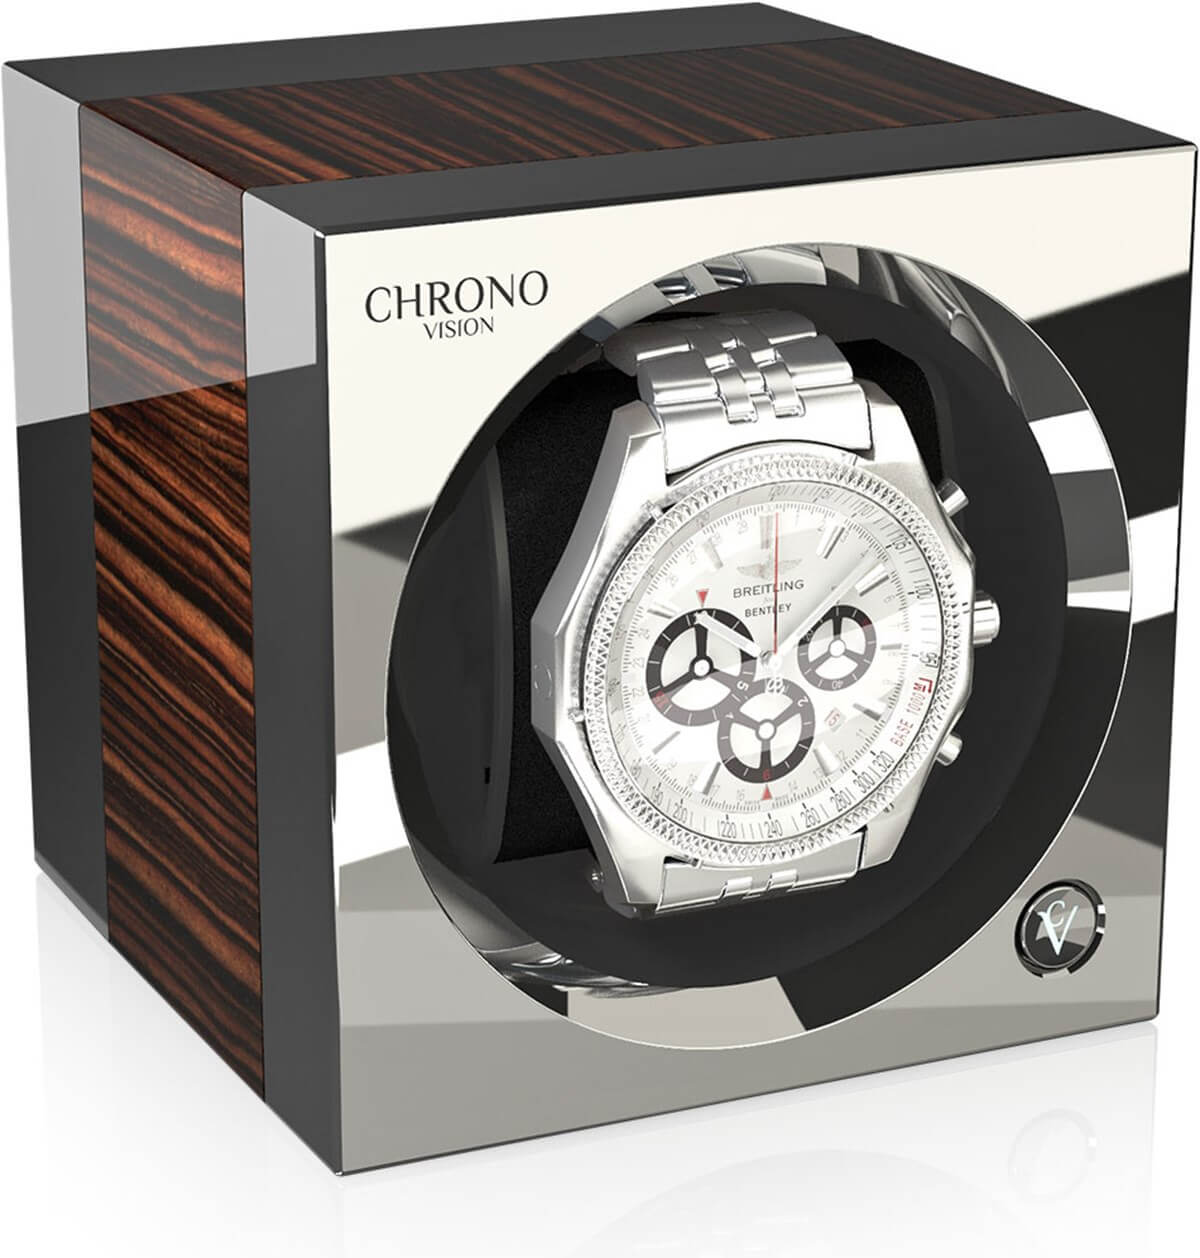 Chronovision One Macassar high-gloss / chrome